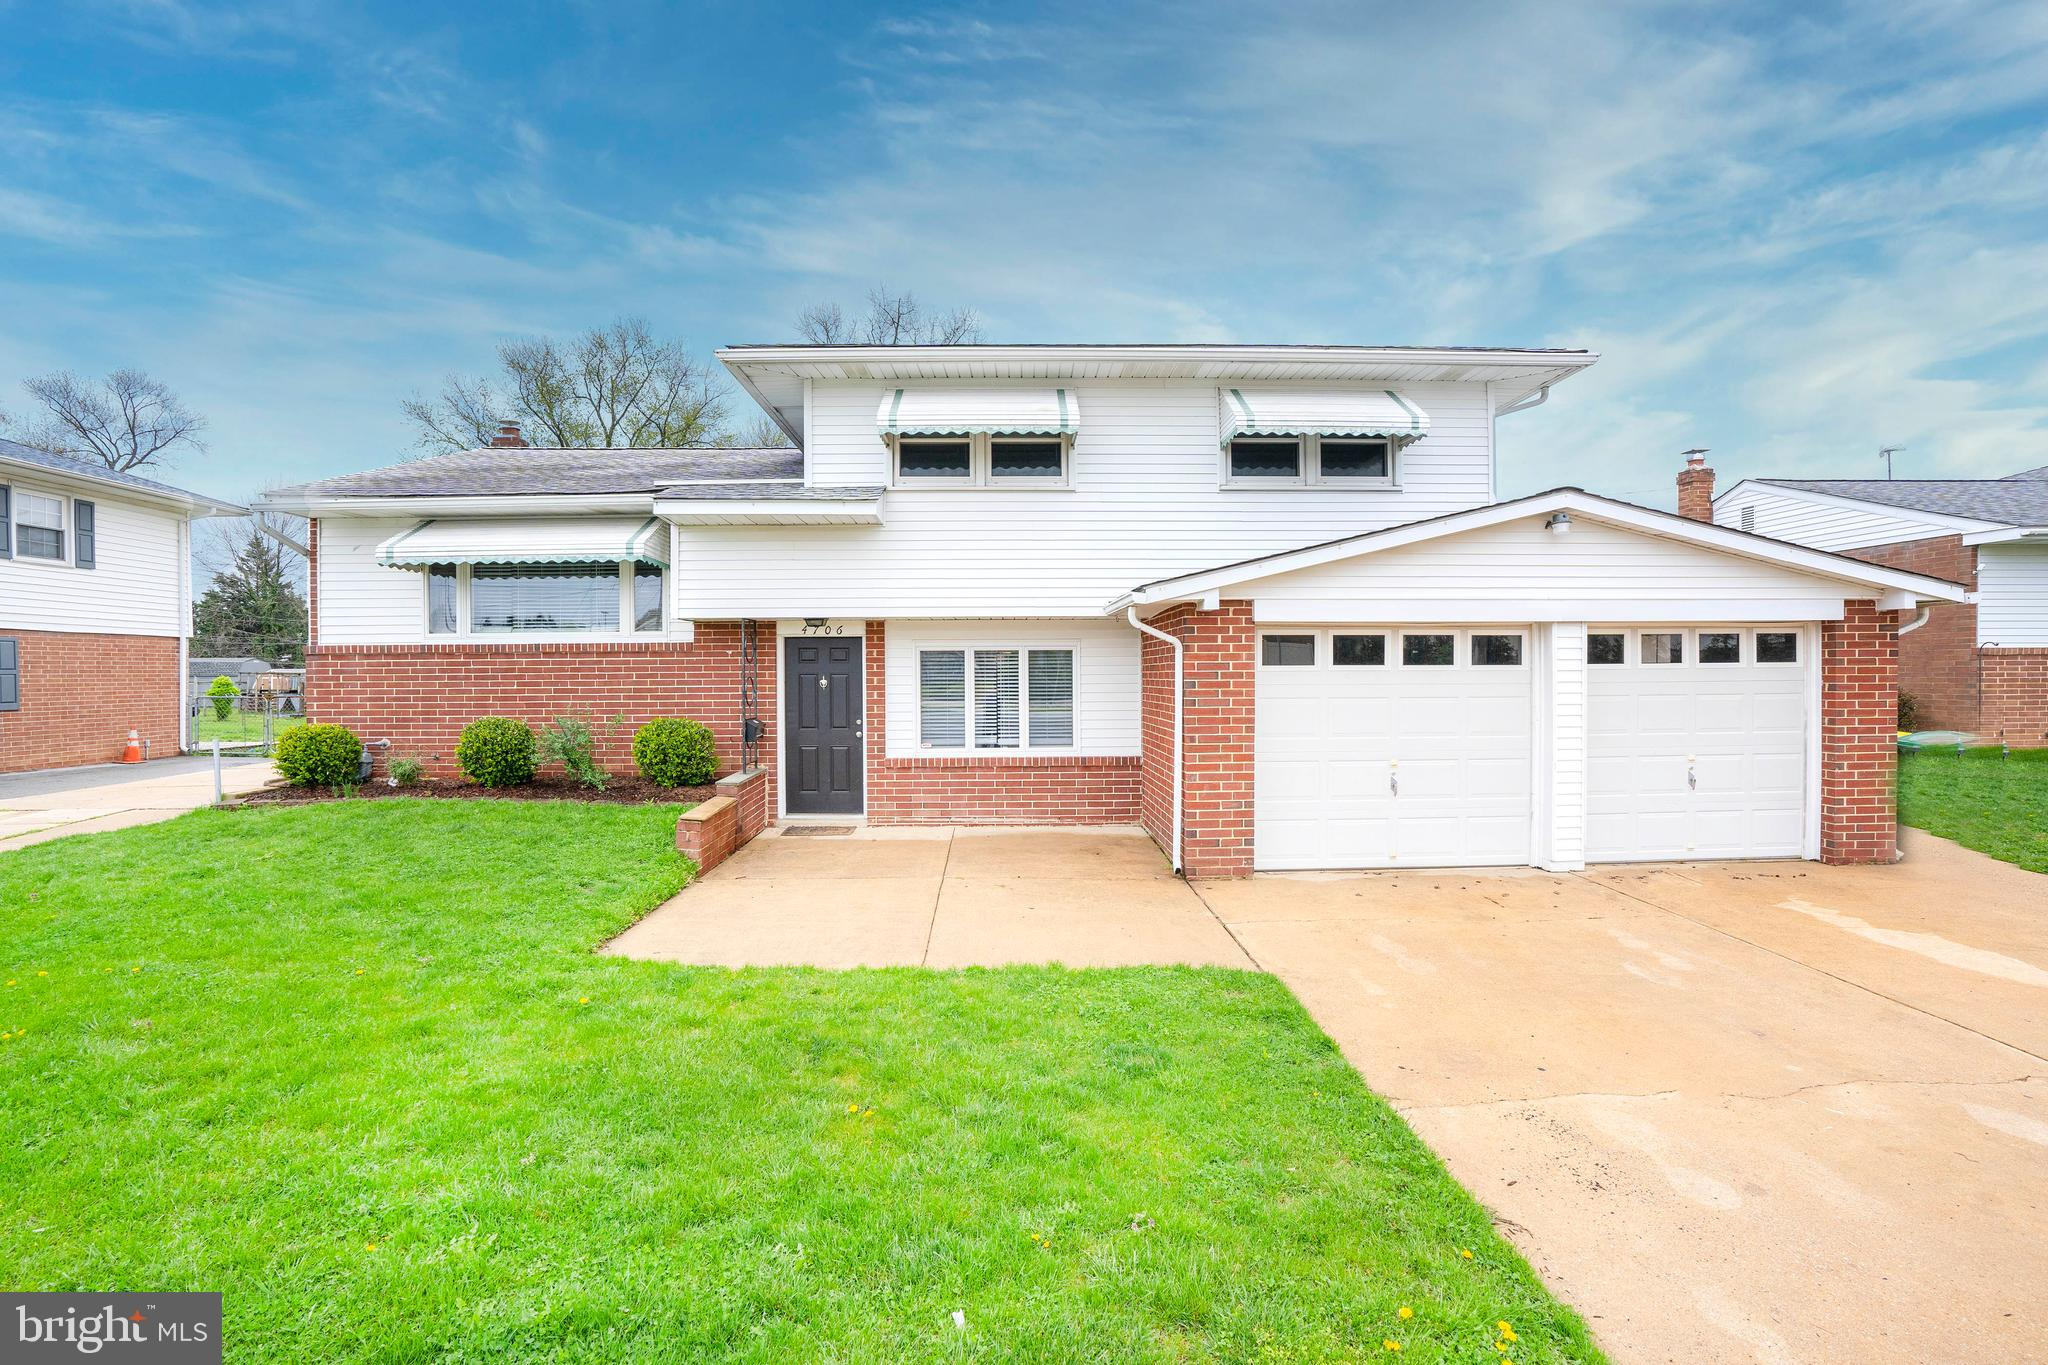 Welcome Home to this amazing 4 bedroom, 2 bath home in Delpark Manor. Conveniently located right off